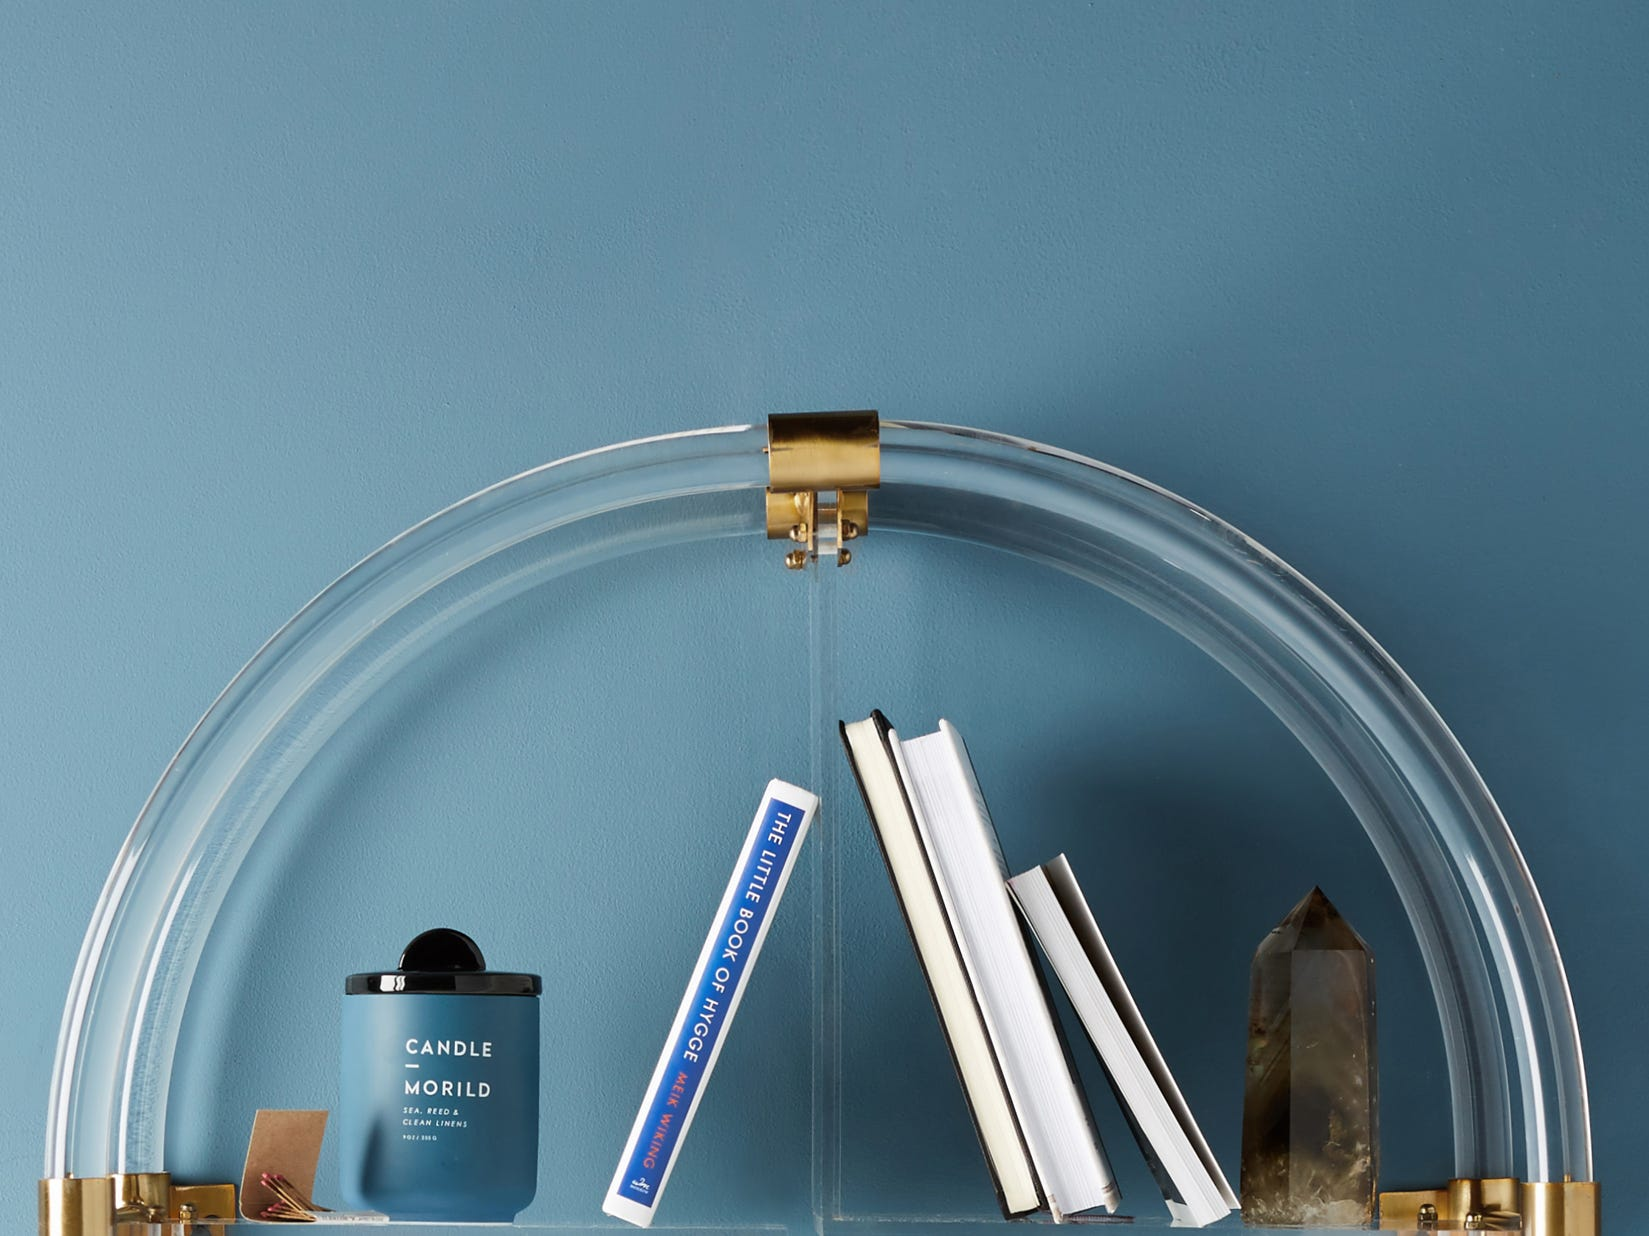 Hanging shelving with style: This light-catching Lucite arch with brass supports that also are decorative from Anthropologie is the perfect platform for showcasing prized possessions. It is 26 inches tall, 24 3/4 inches wide and 10 1/2 inches deep.